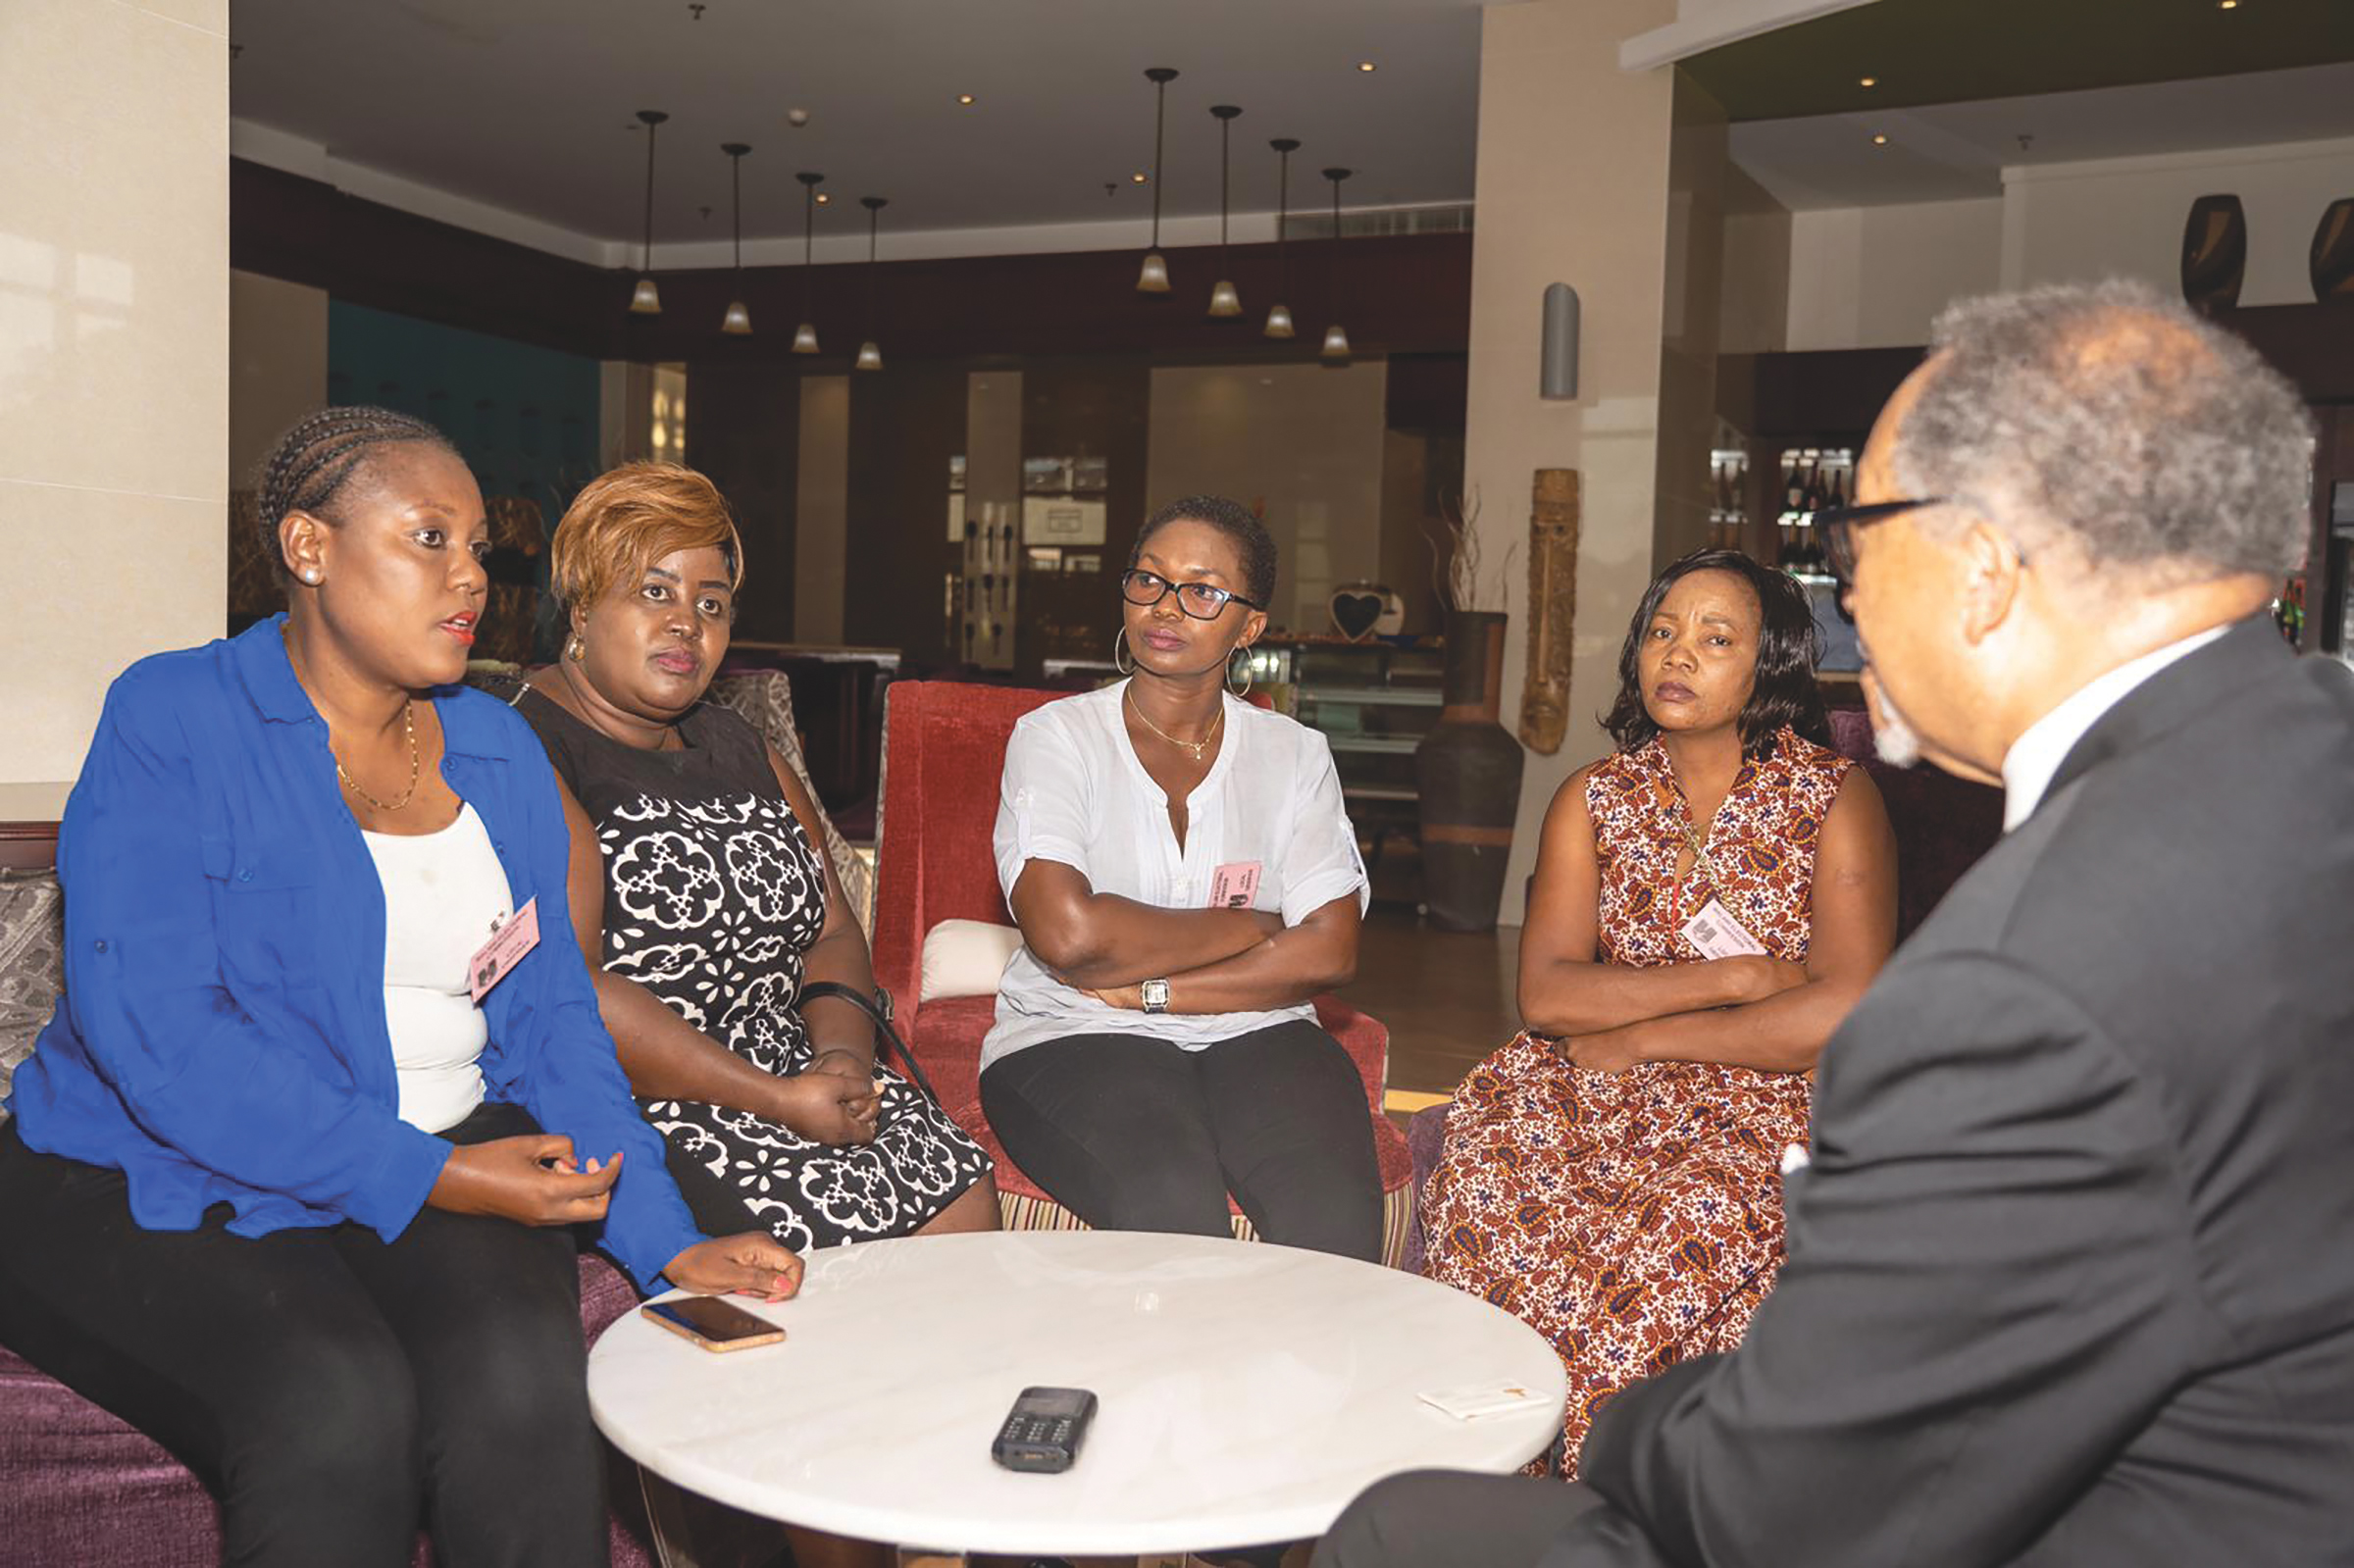 NNPA President and CEO, Dr Benjamin F. Chavis, Jr., (far right) invited Kettie Kamwangala (far left) and other Malawian women leaders for an open discussion while the ballots were being counted after a historic voter turnout across Malawi.